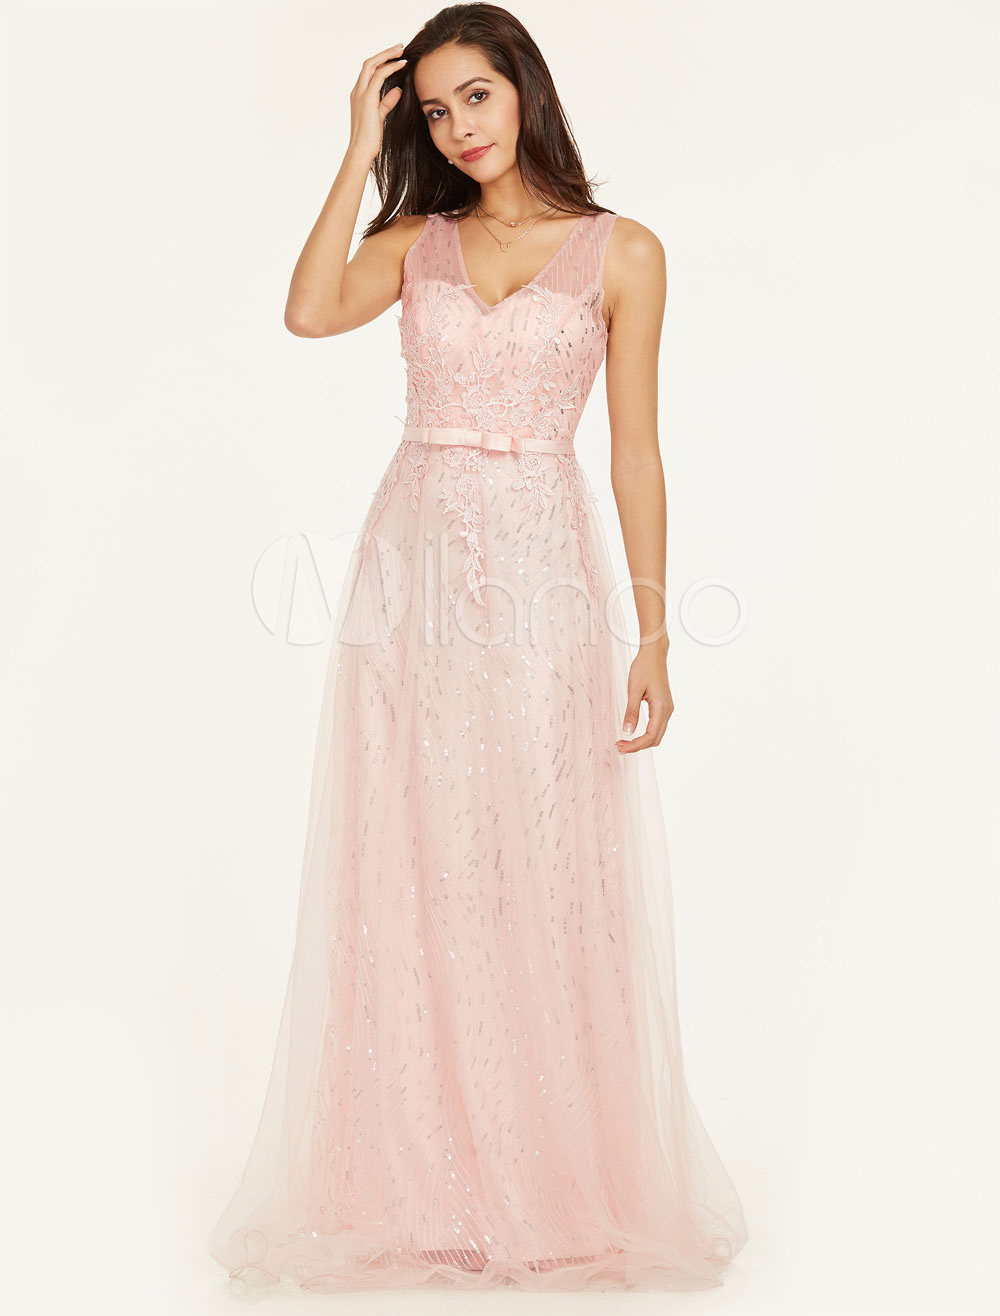 Prom Dresses Long Lace Applique Formal Gowns Sequin V Neck Illusion Bow Sash Floor Length Special Occasion Dresses (Wedding Cheap Party Dress) photo